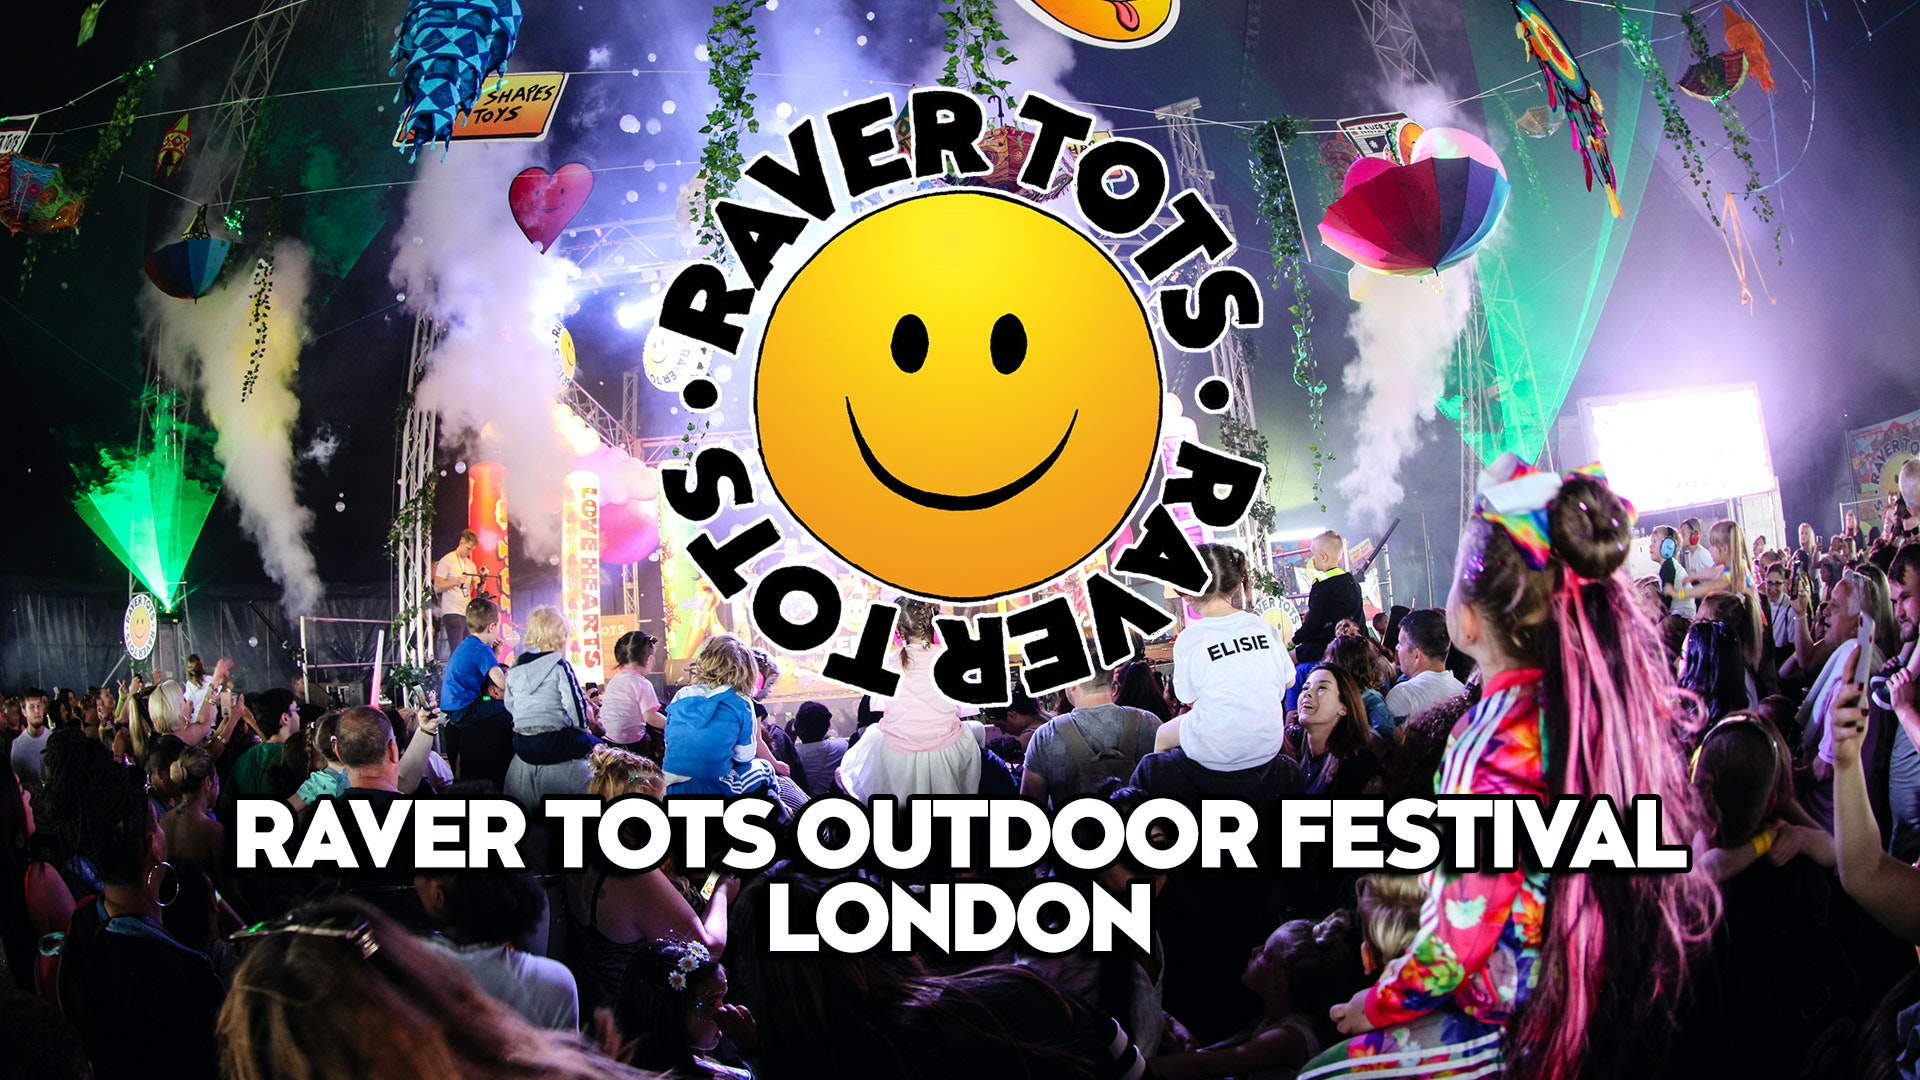 Raver Tots Outdoor Festival London 2021